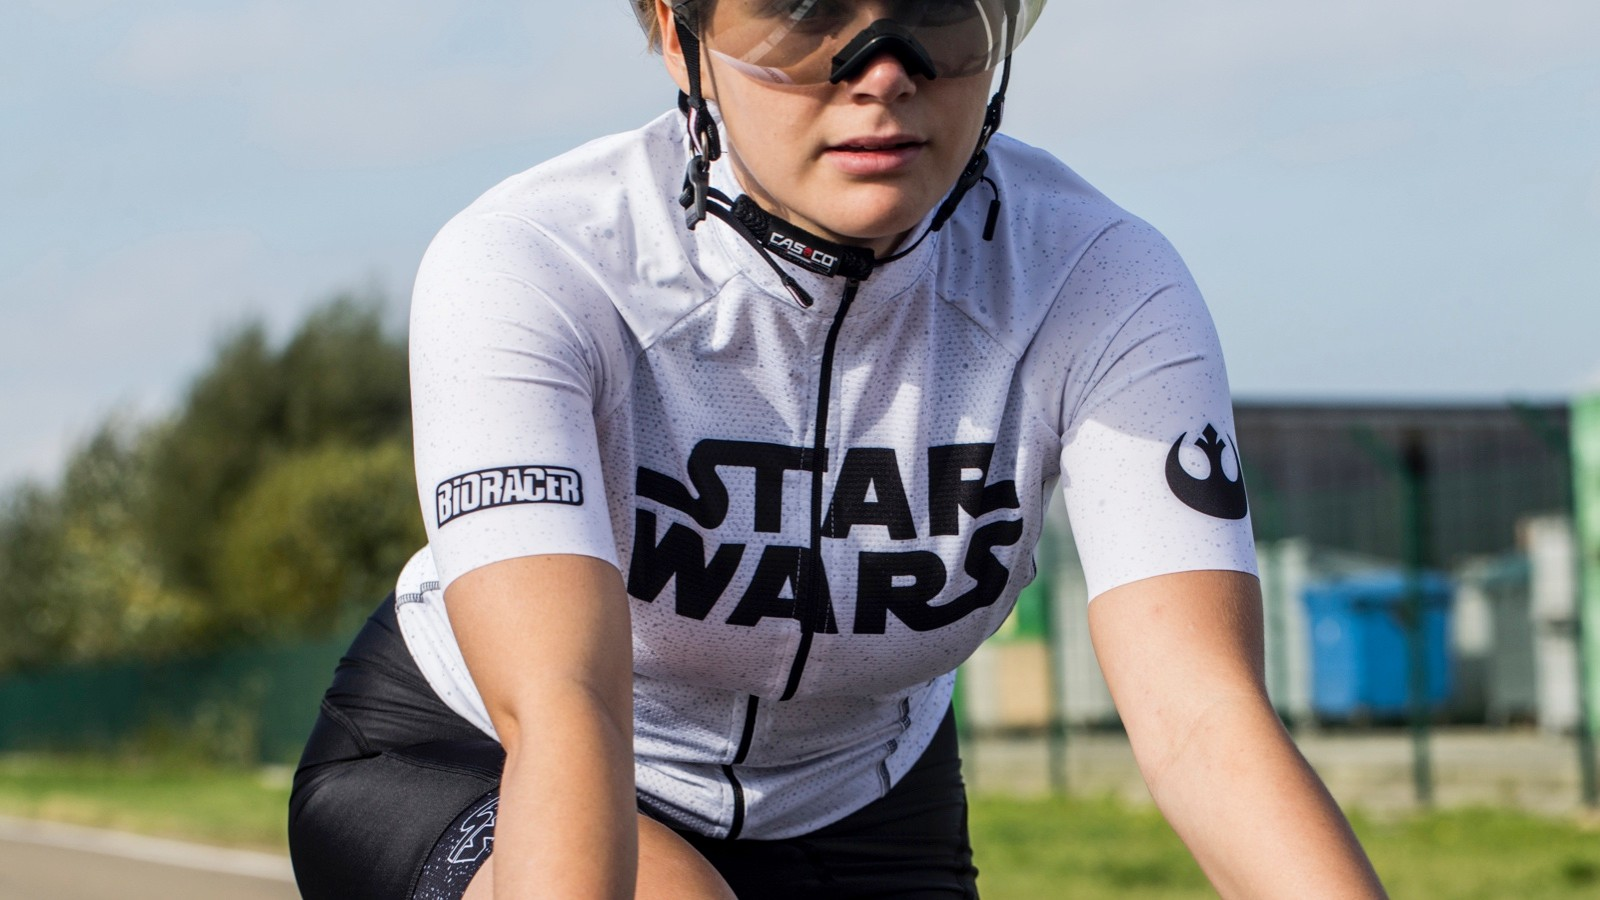 The Star Wars Logo Jersey